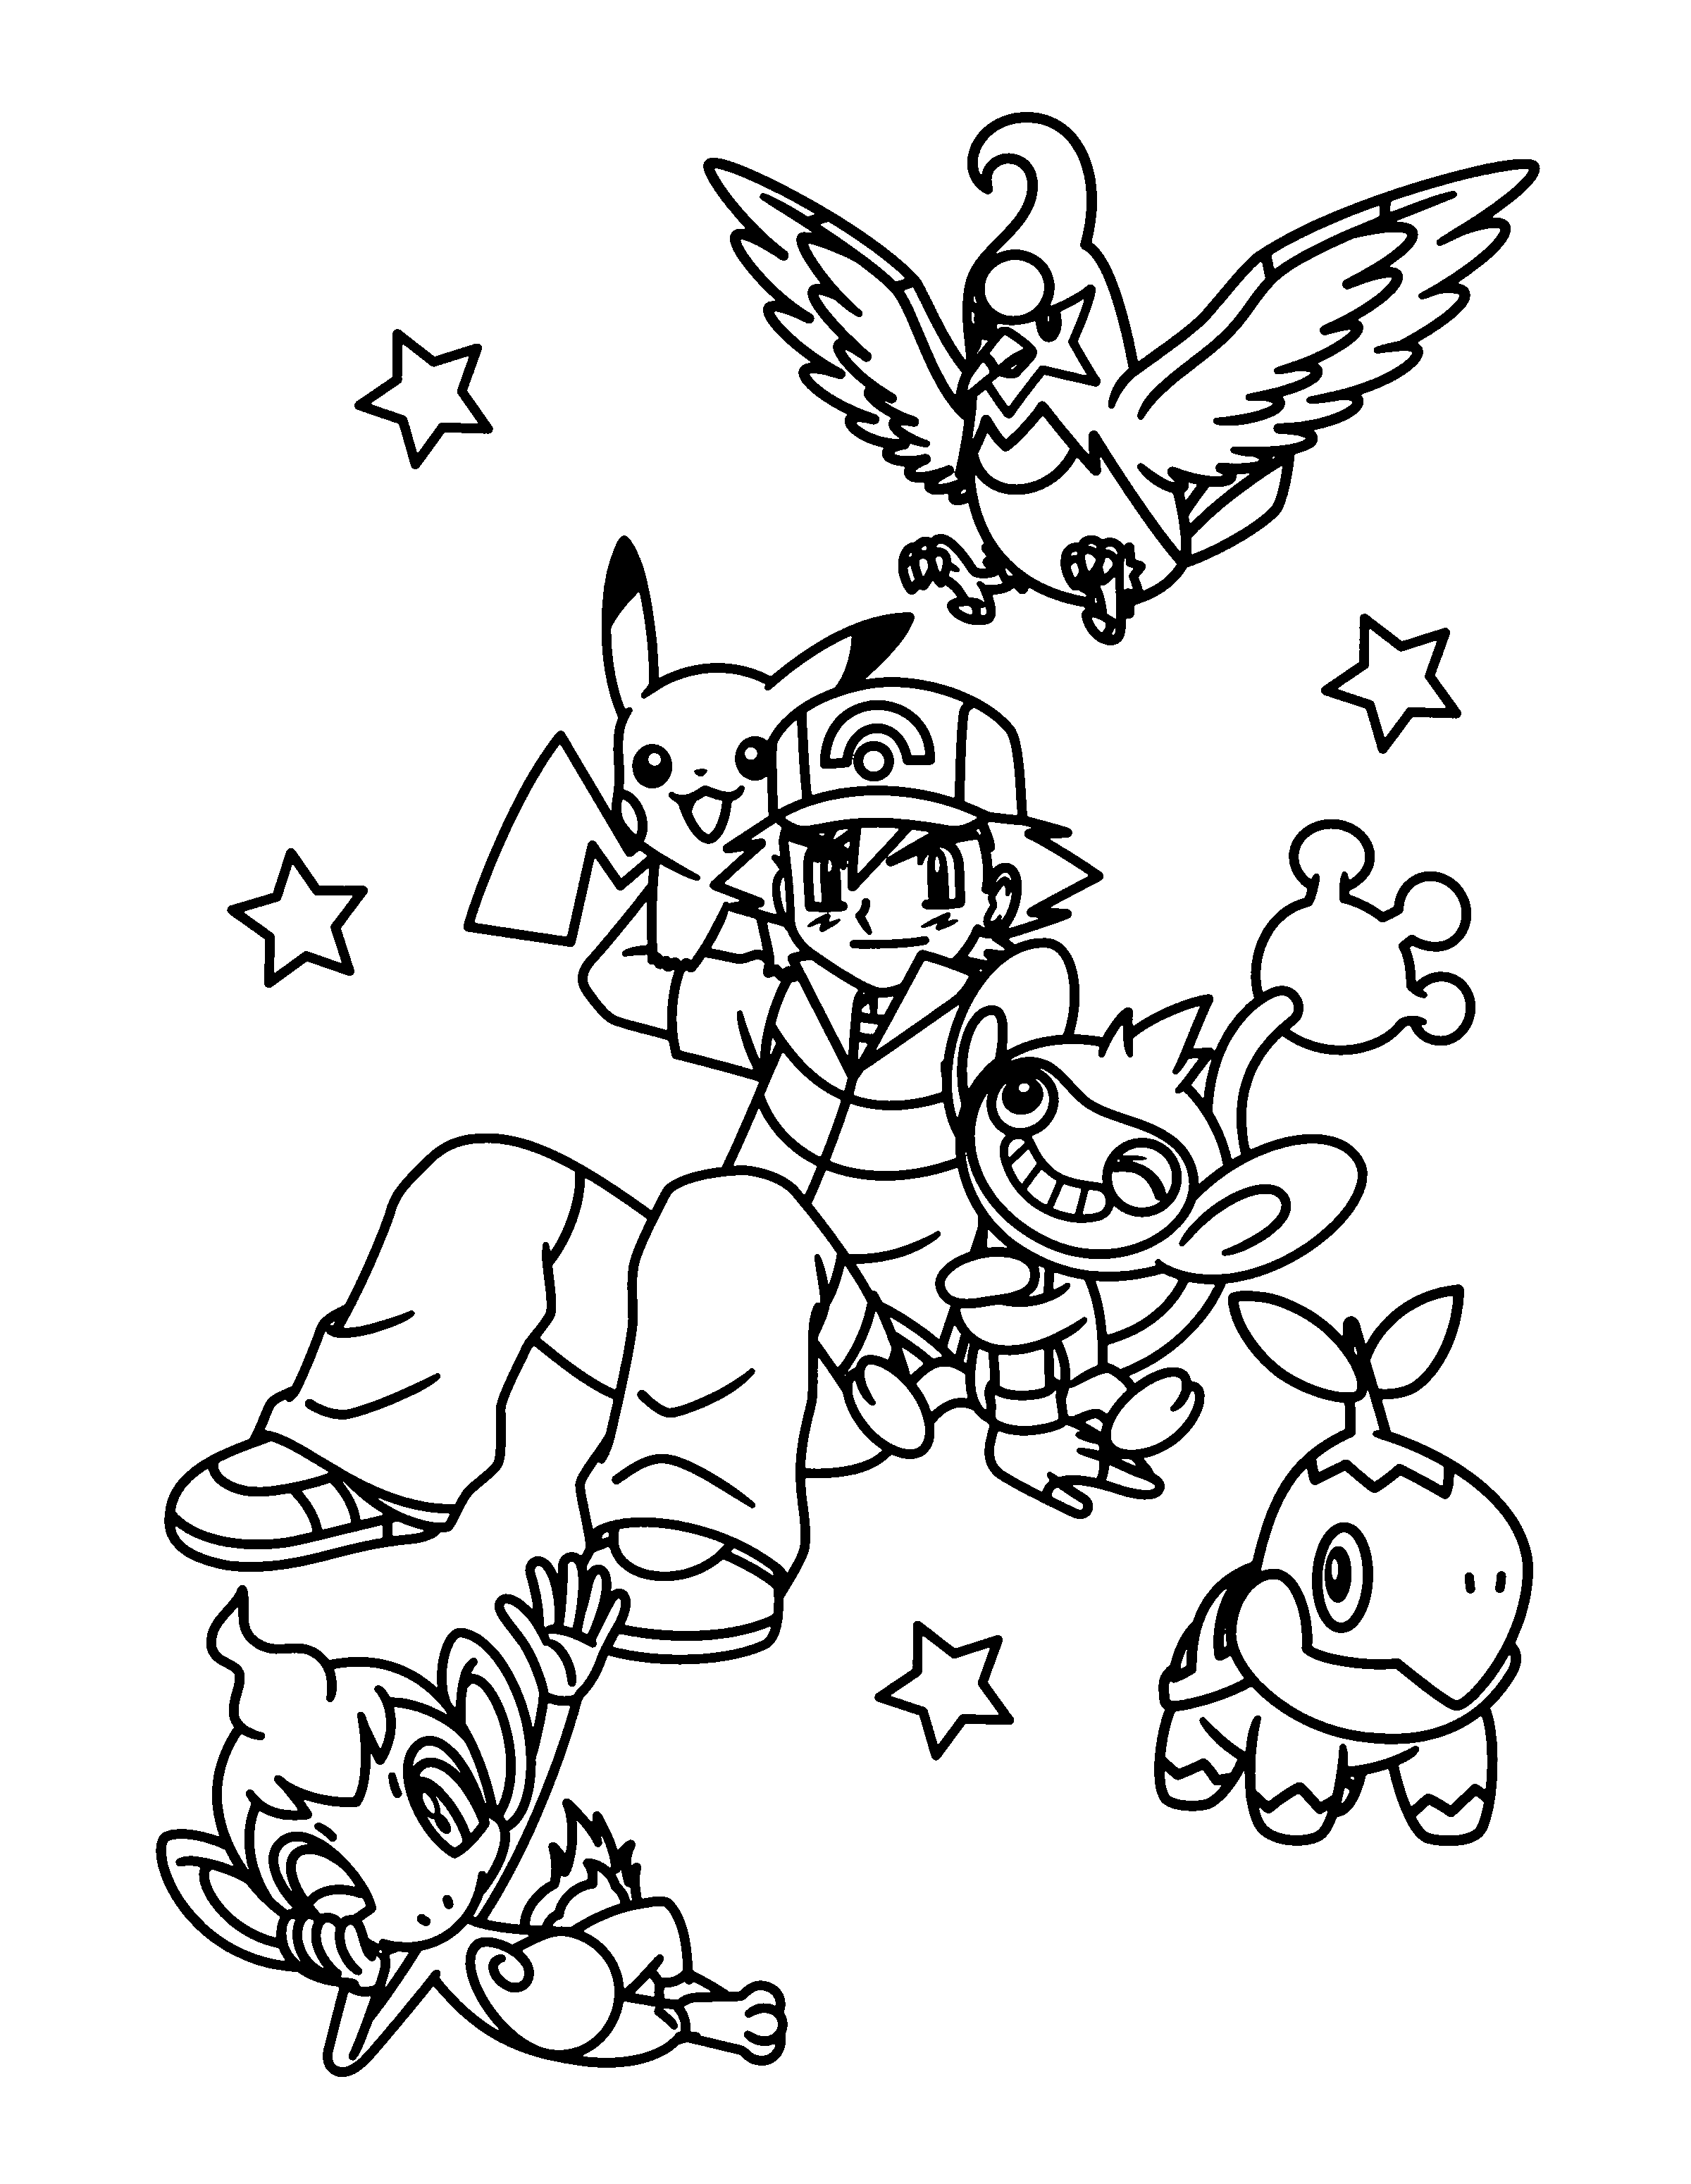 Awesome Site For Printable Pokemon Coloring Pages Moon Coloring Pages Pokemon Coloring Pages Pokemon Coloring Sheets